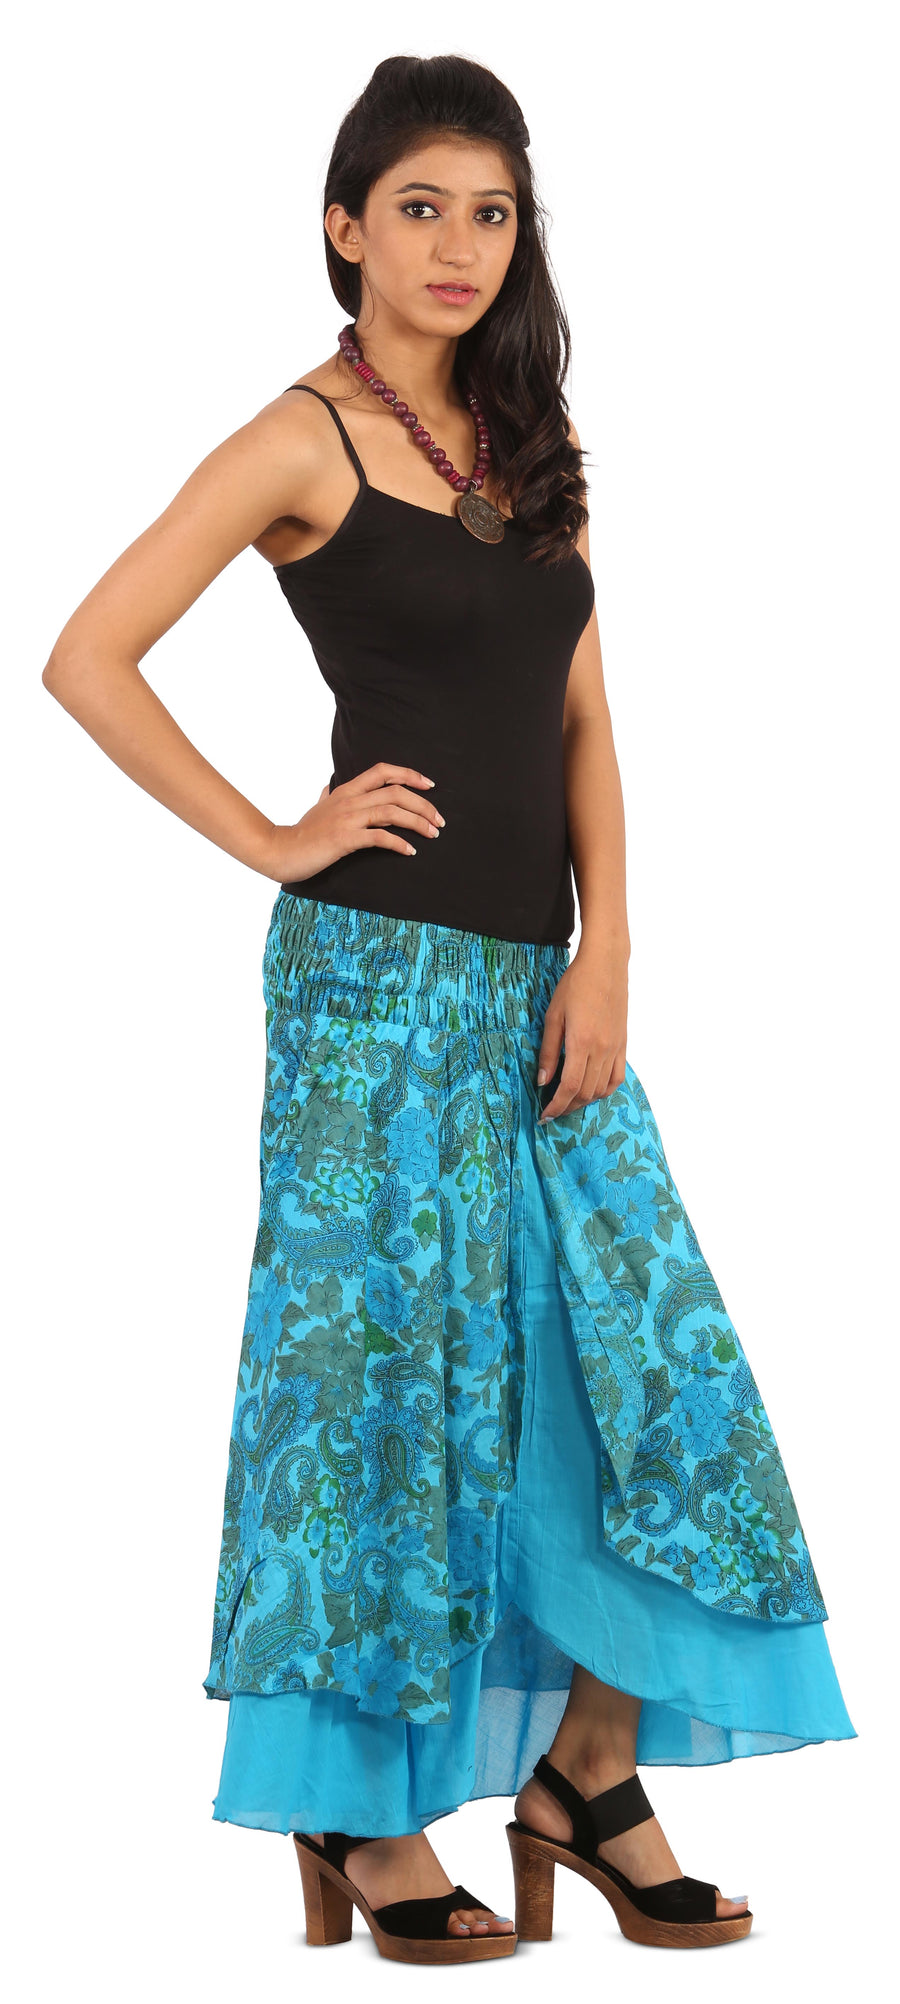 long Blue skirt, long skirts for women, long skirt, maxi skirt, ladies skirt, skirts online, summer skirts, winter skirts, cute skirts, cotton skirts, XL Skirt, XXL Skirts, Long skirts online , full skirt, long summer skirts, casual skirts, Skirts with pockets